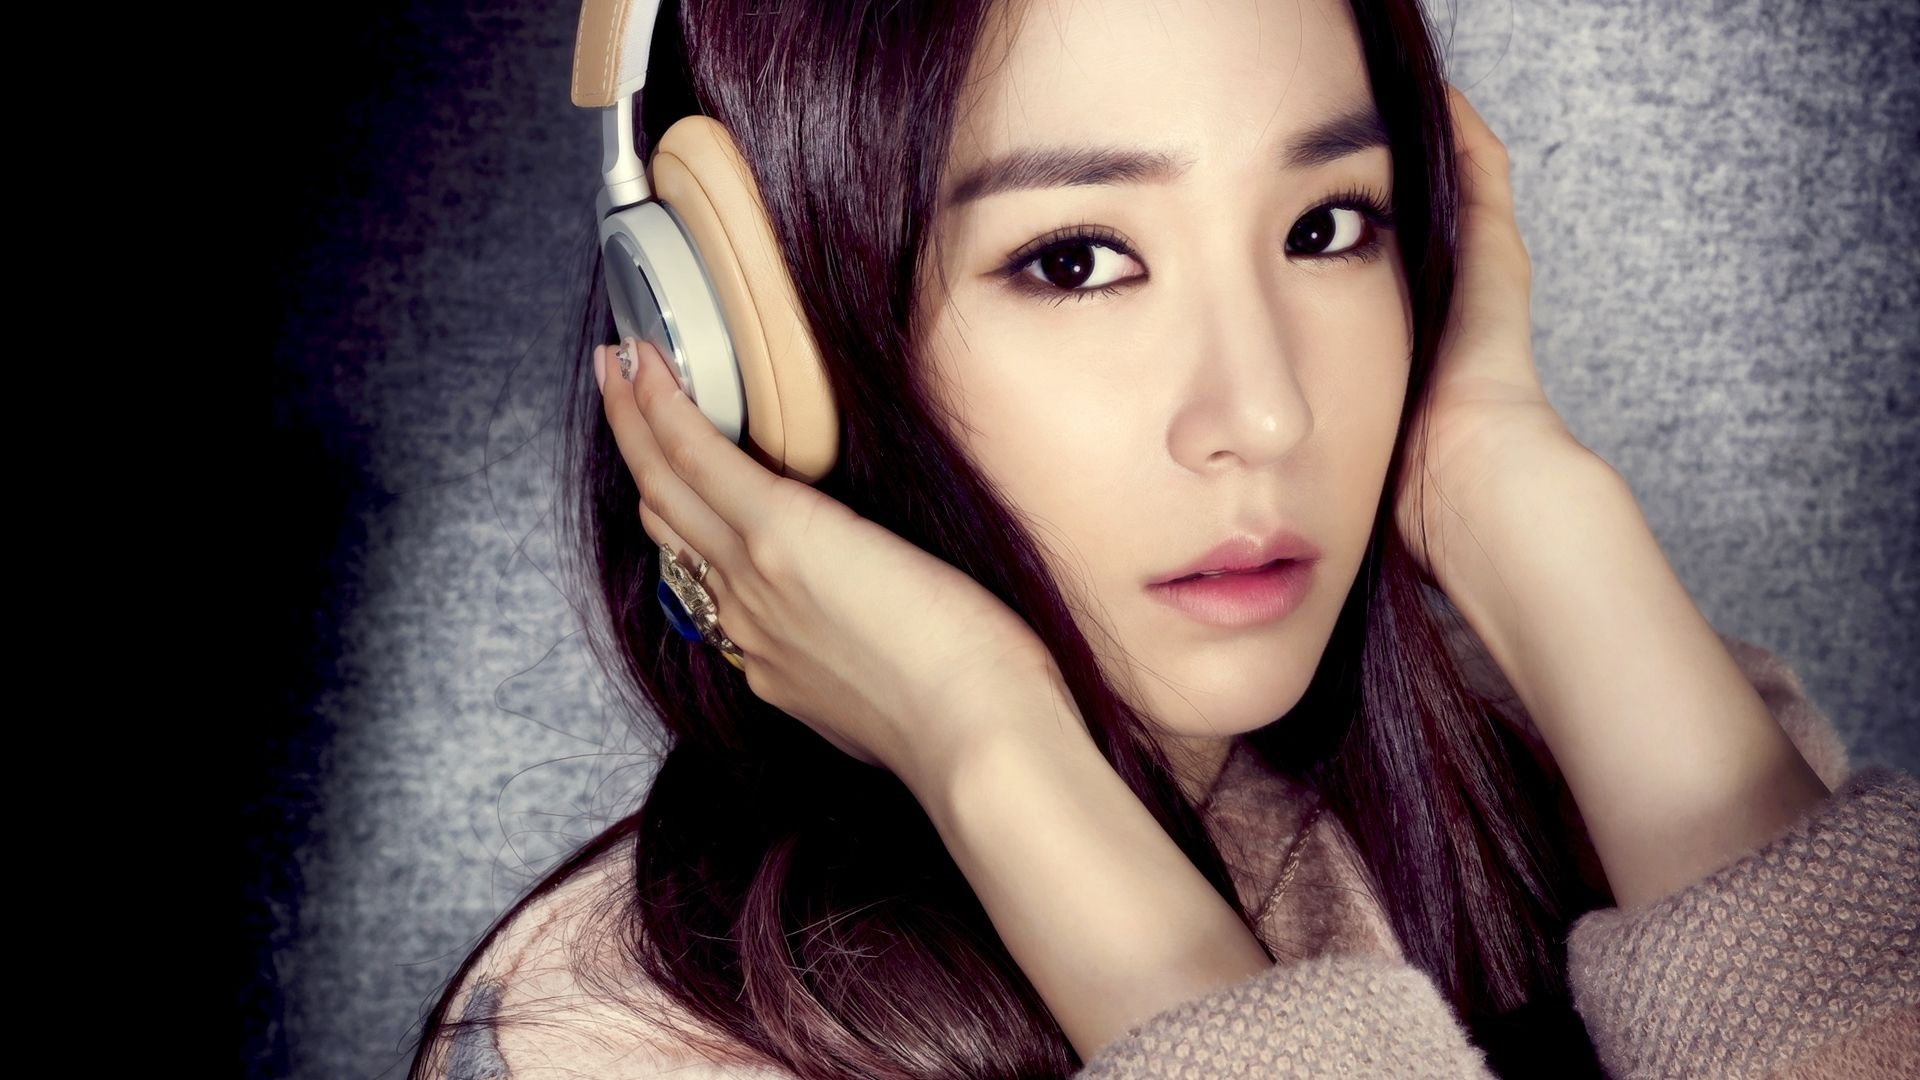 tiffany hwang singer wallpaper 61113